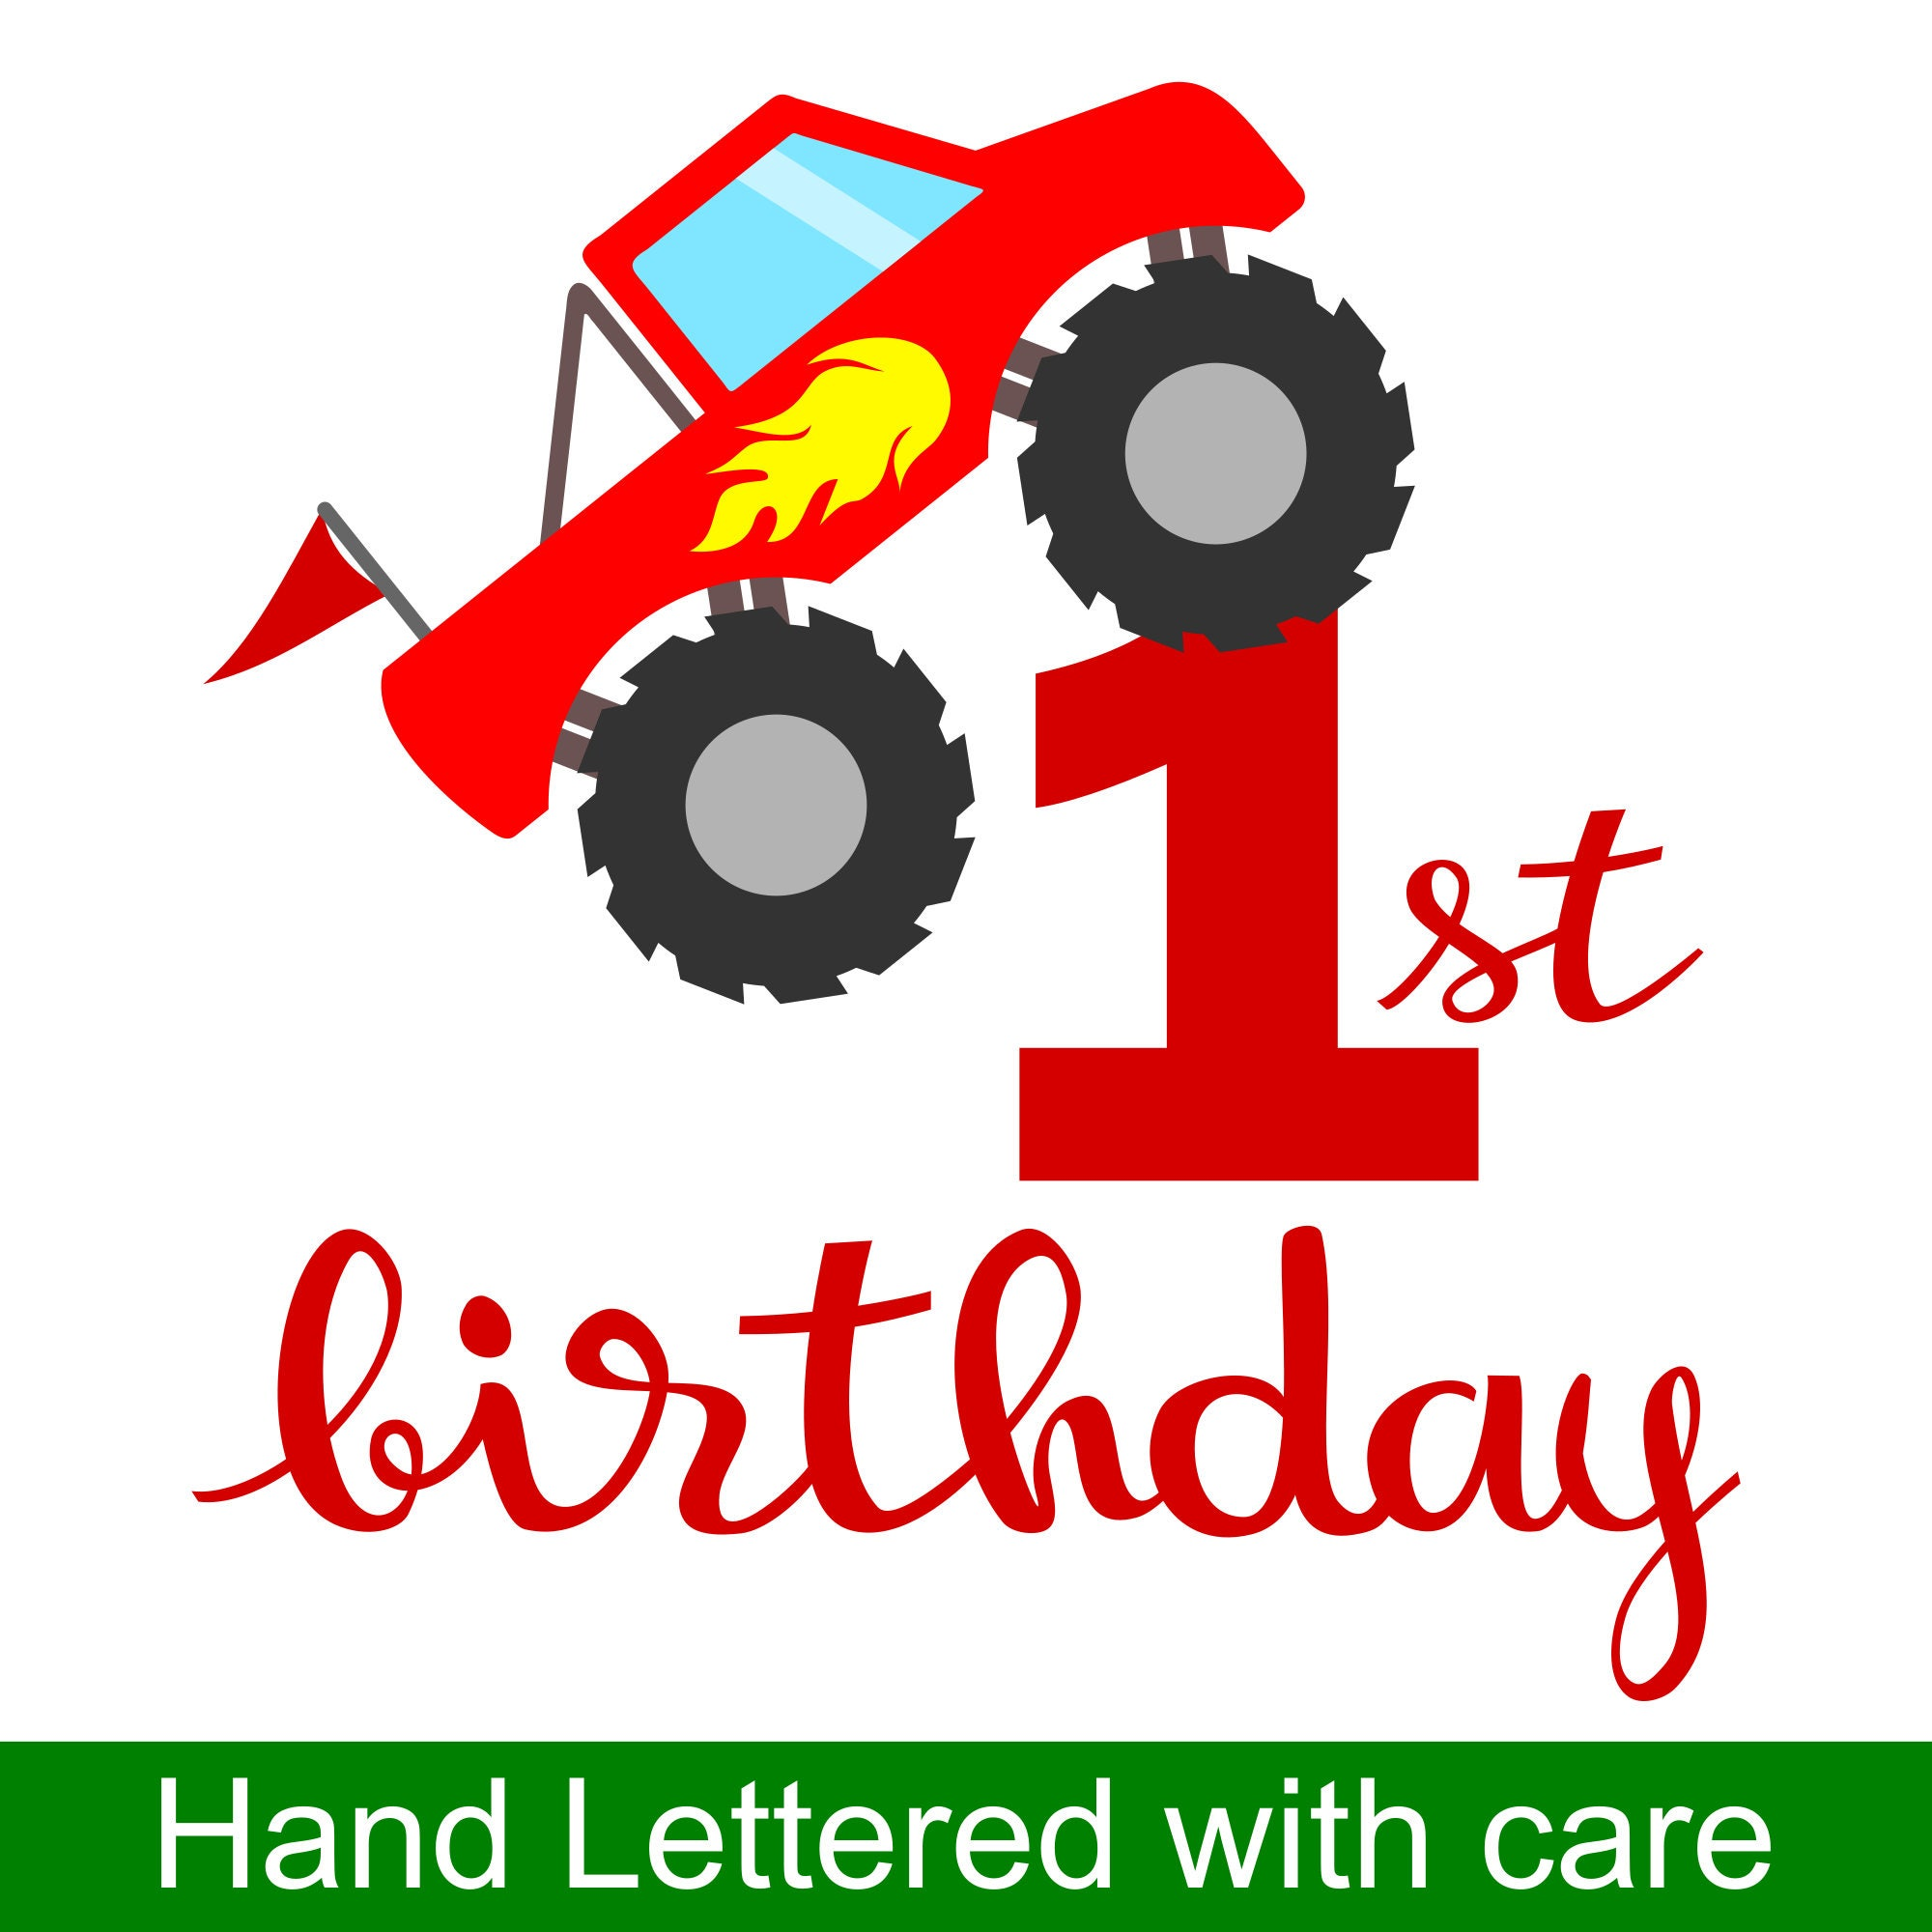 Monster Truck 1st Birthday Svg And Printable Clipart To Make A 1st Birthday Shirt Gift Card Invite Orinvitations For Boys